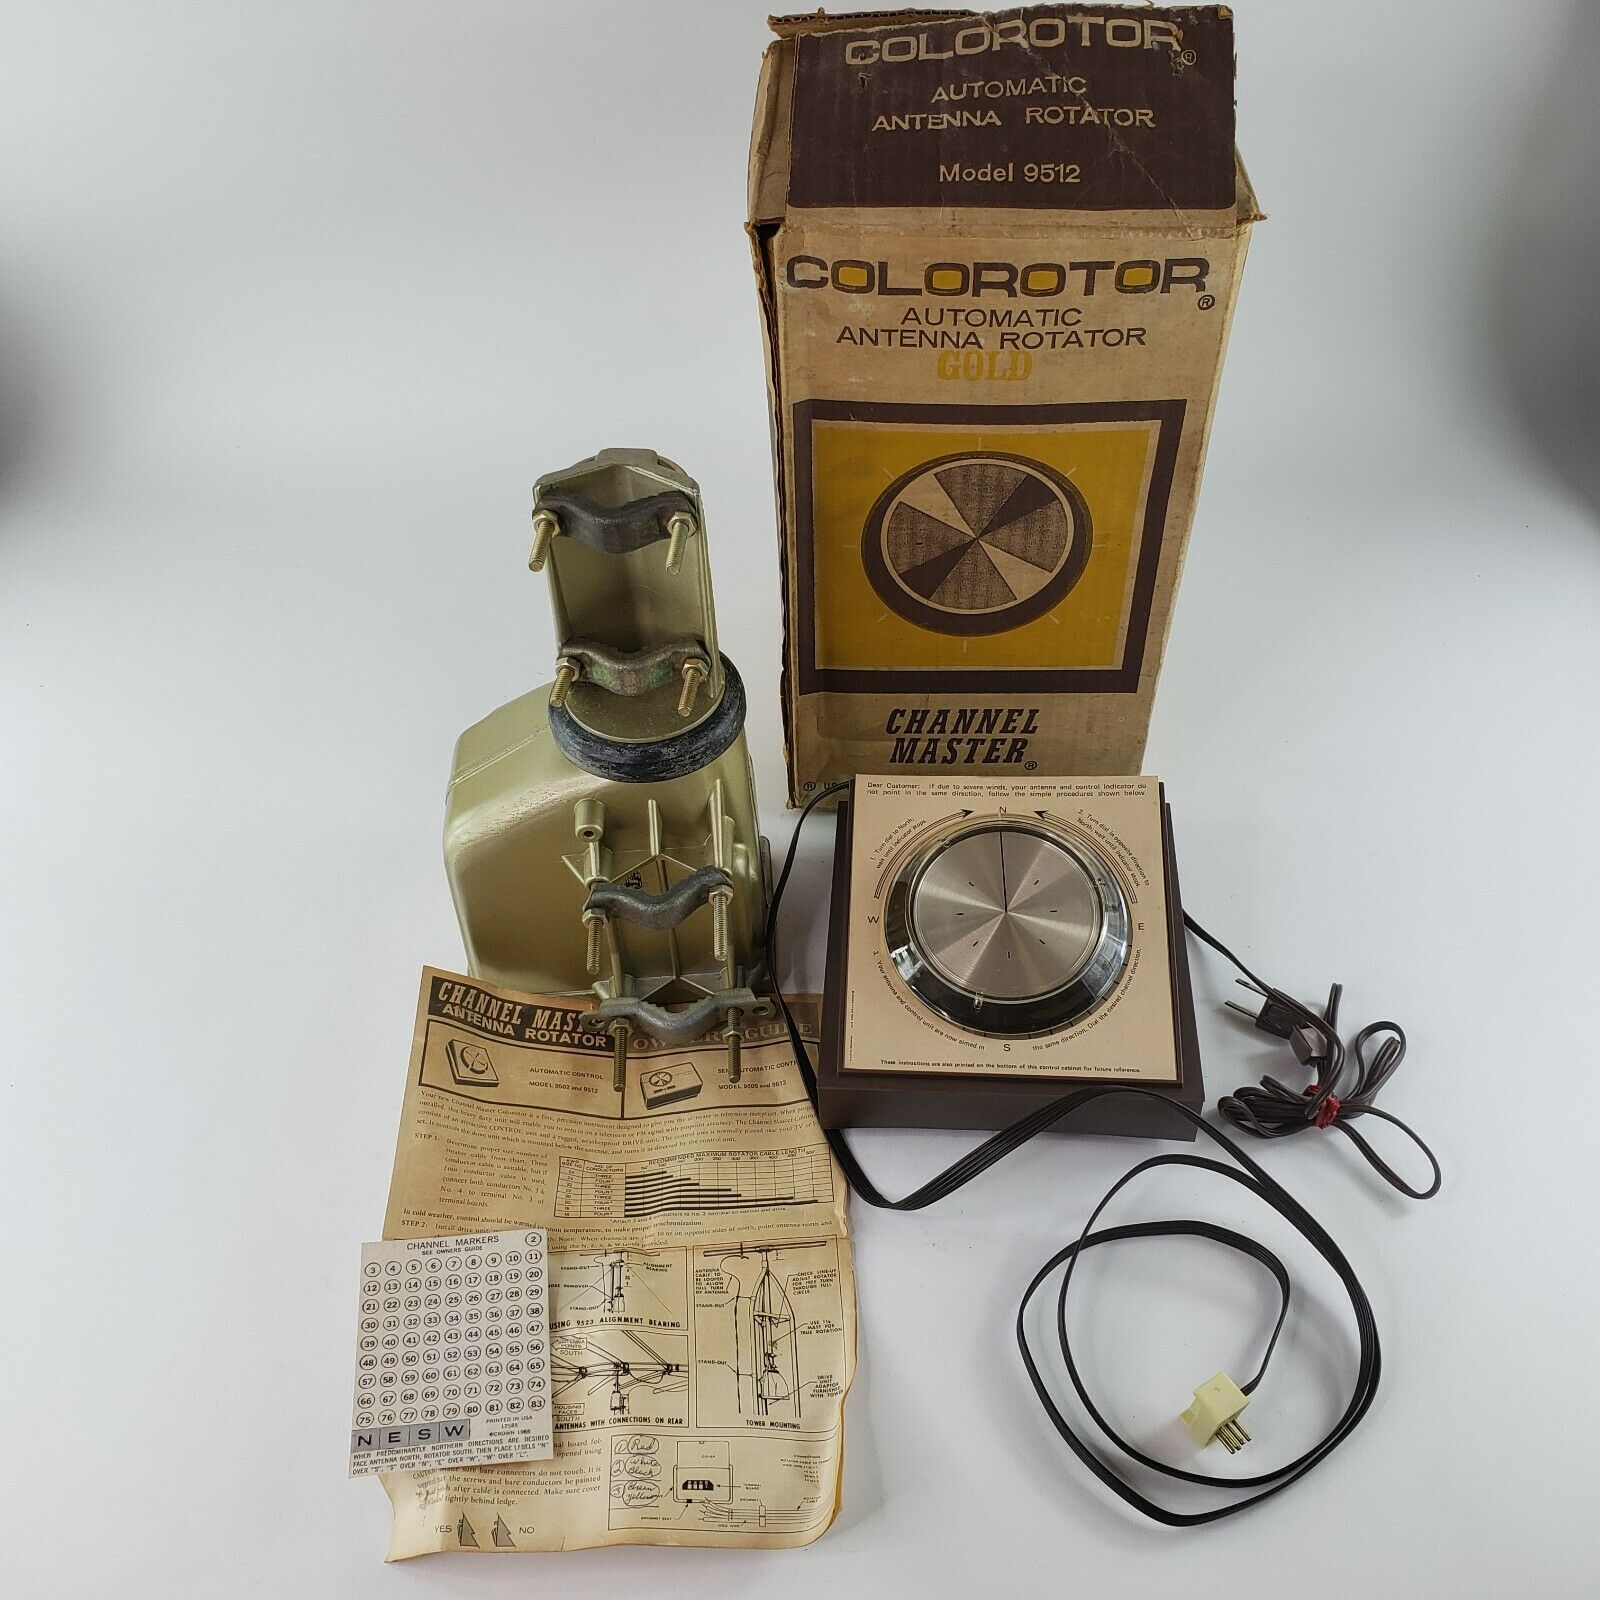 Channel Master Colorotor 9512 Automatic Antenna Rotator GOLD Vintage 1971 MINT. Buy it now for 292.98